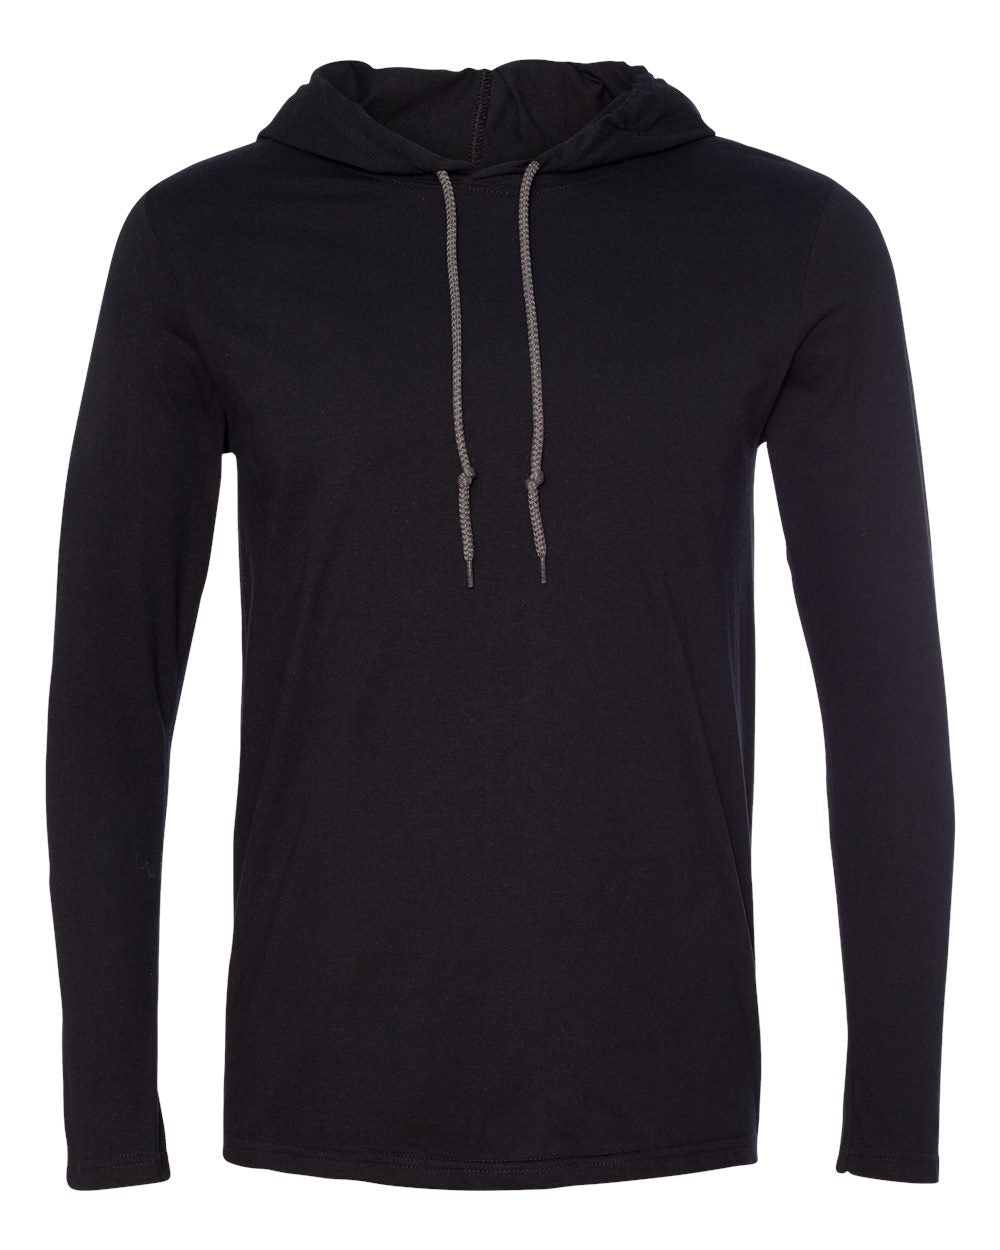 Long Sleeve Hooded T-shirt